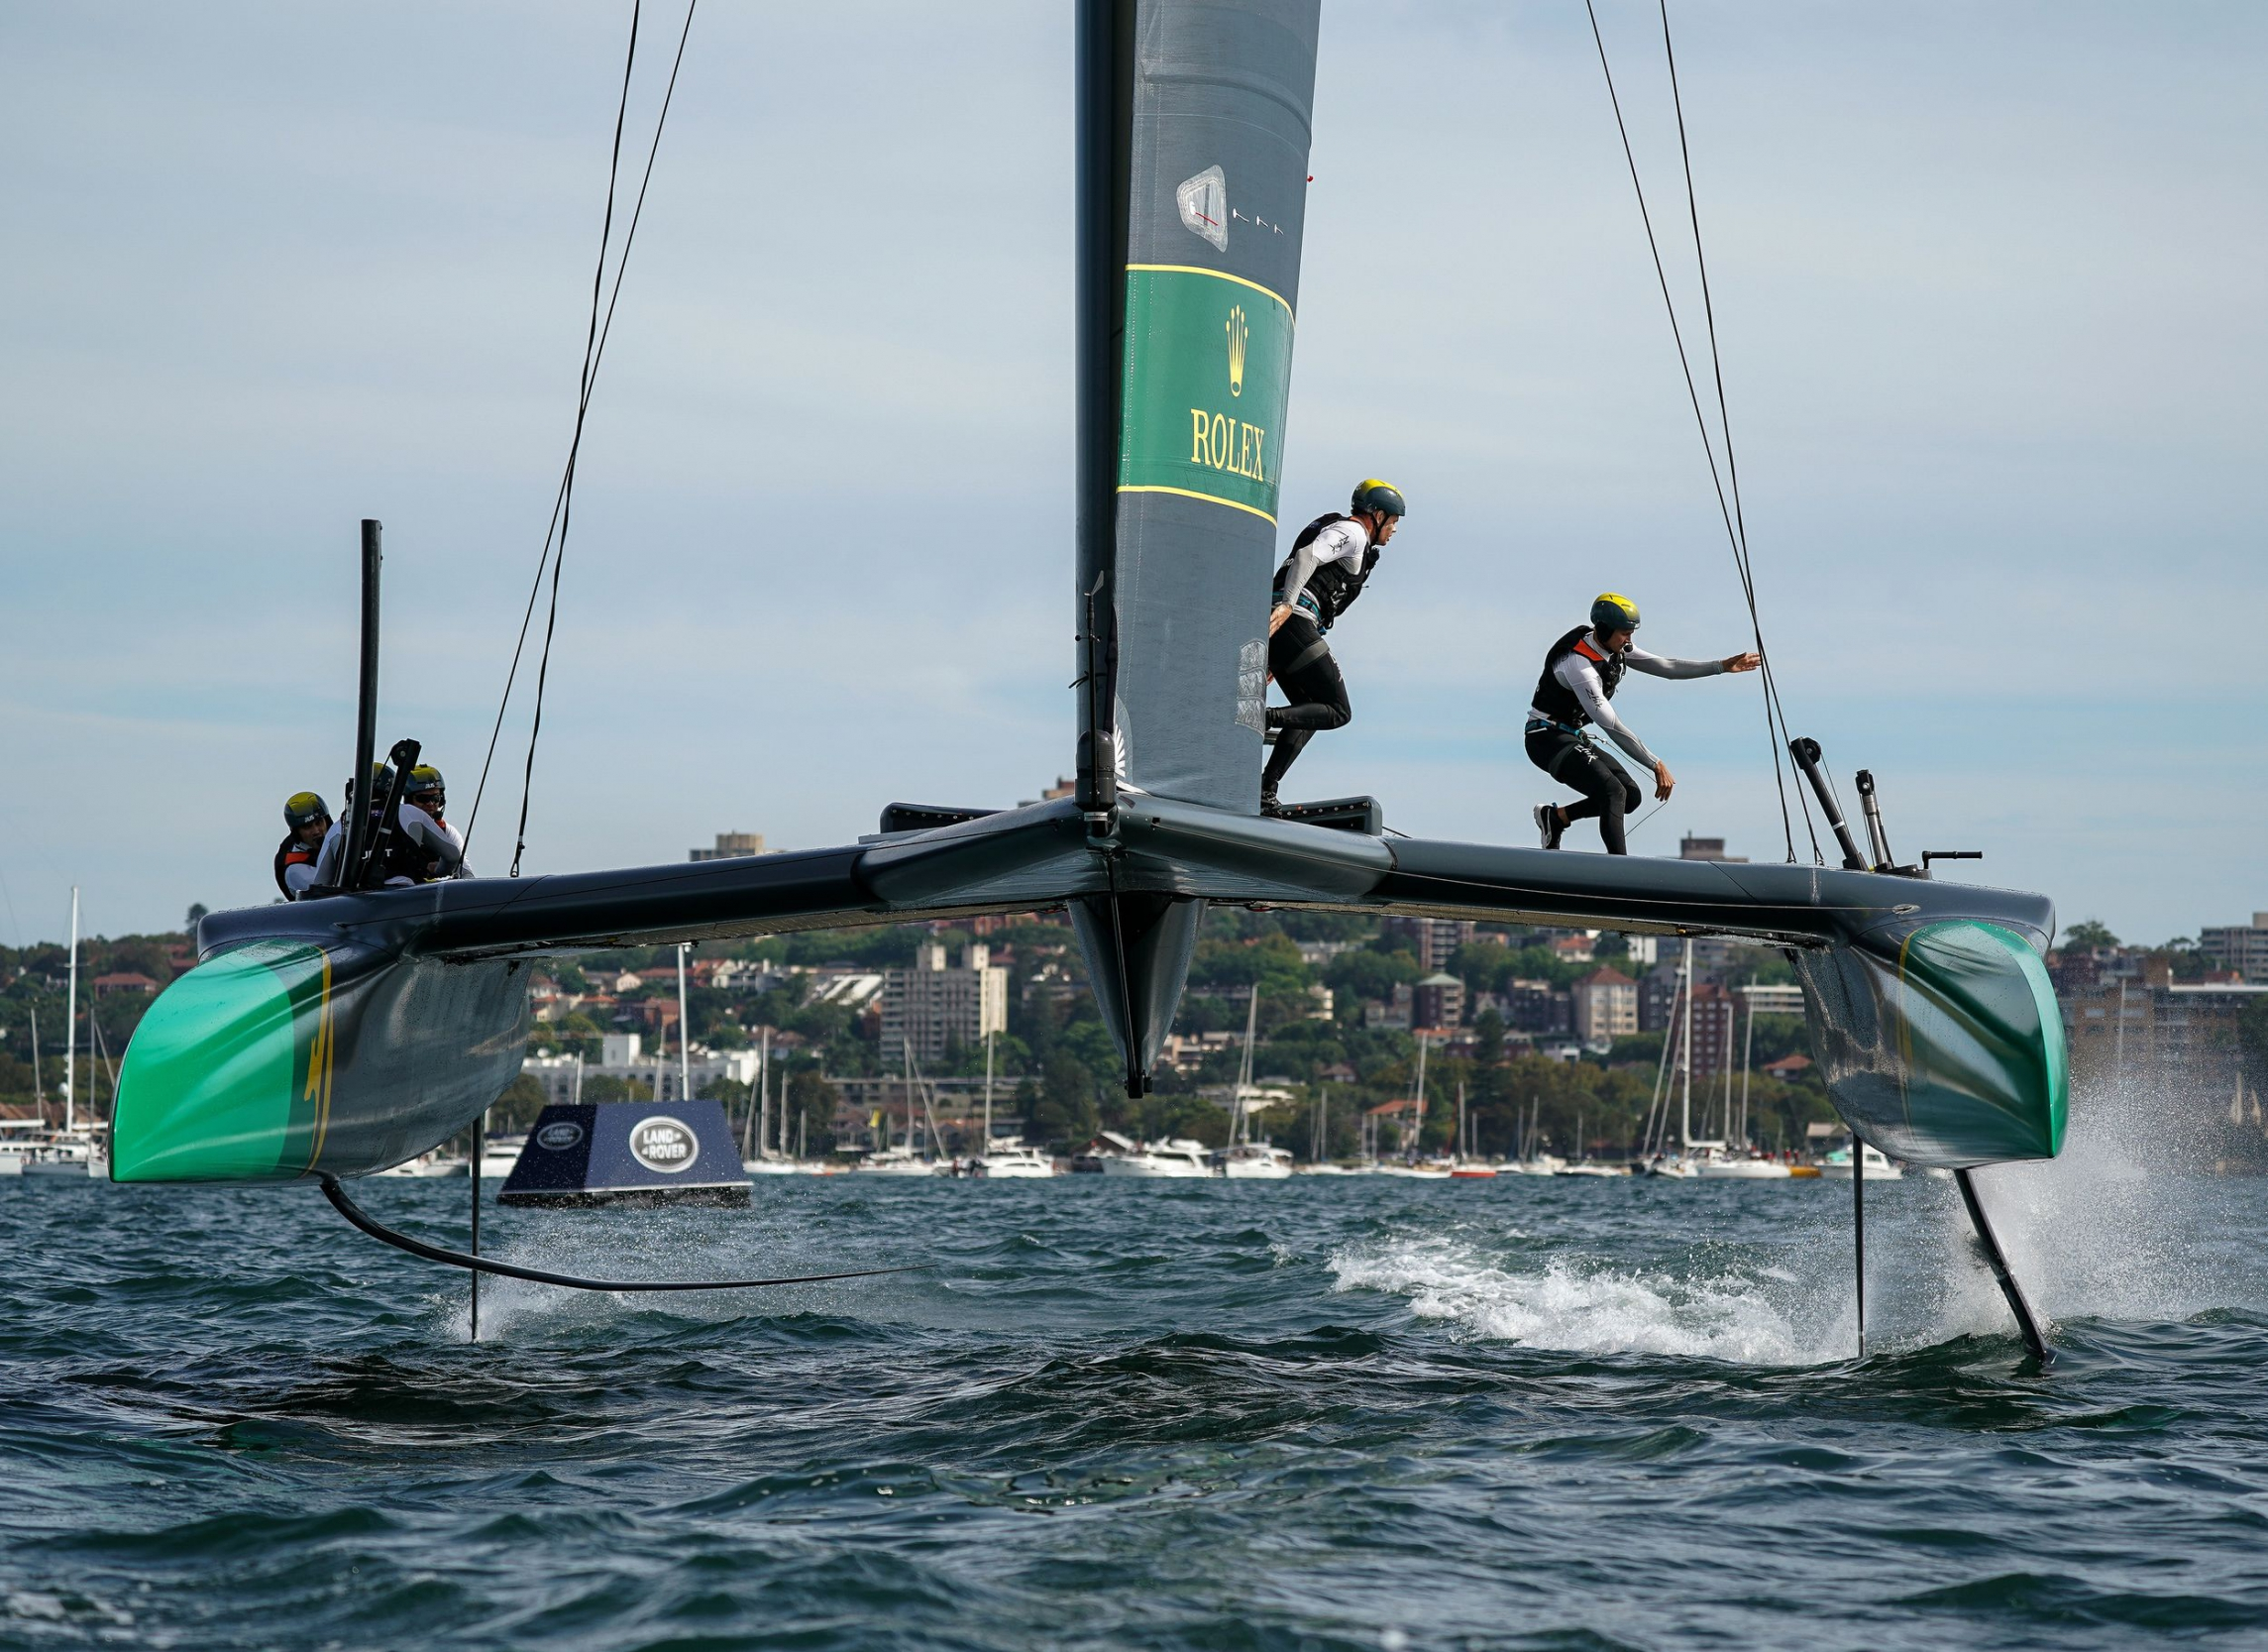 Australia SAILGP Team skippered by Tom Slingsby